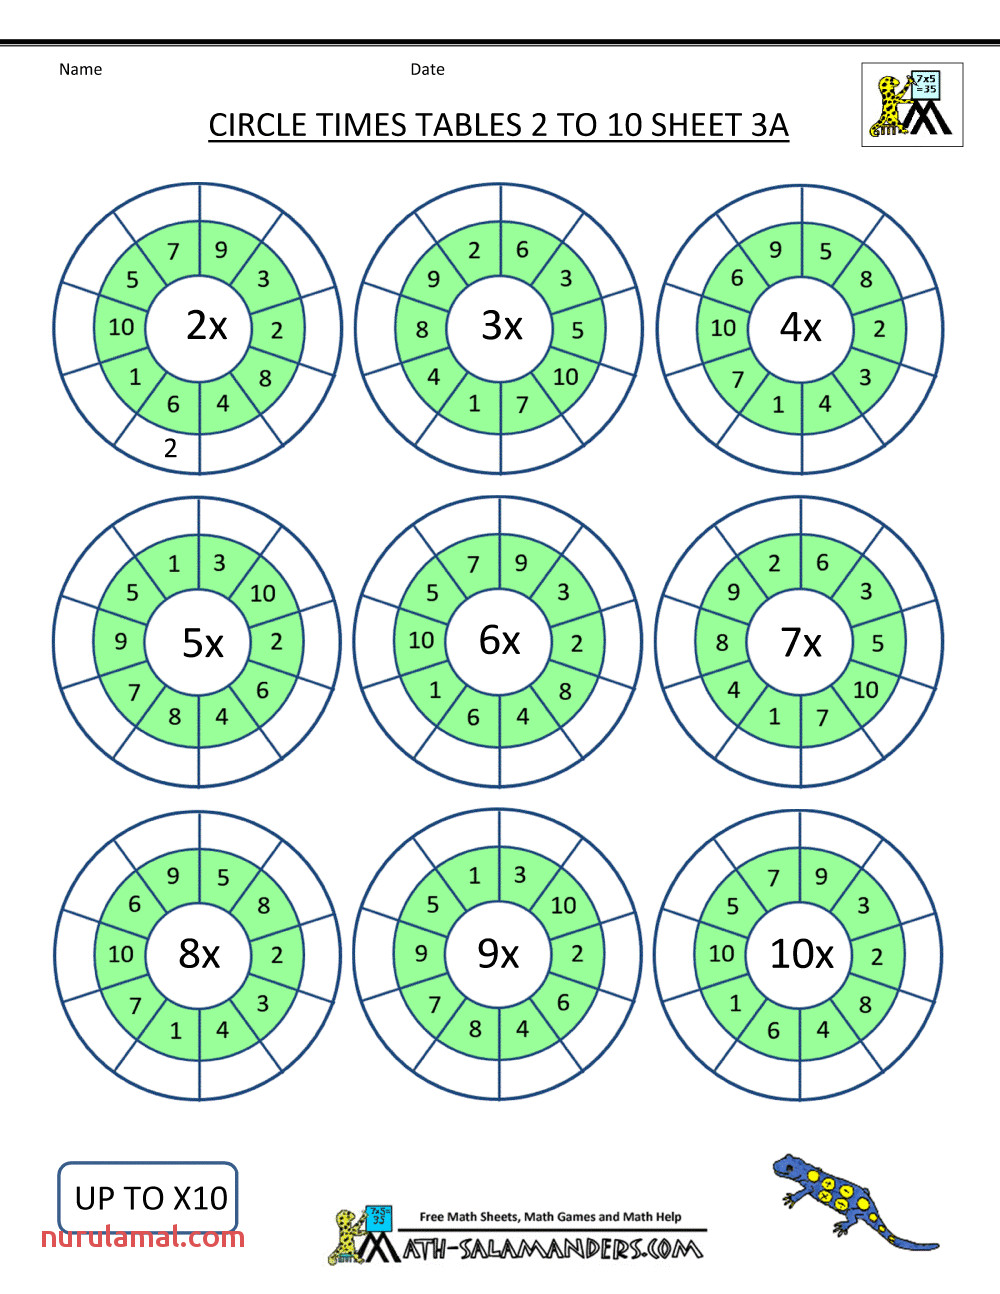 times tables worksheets printable circles 2 to 10 3a